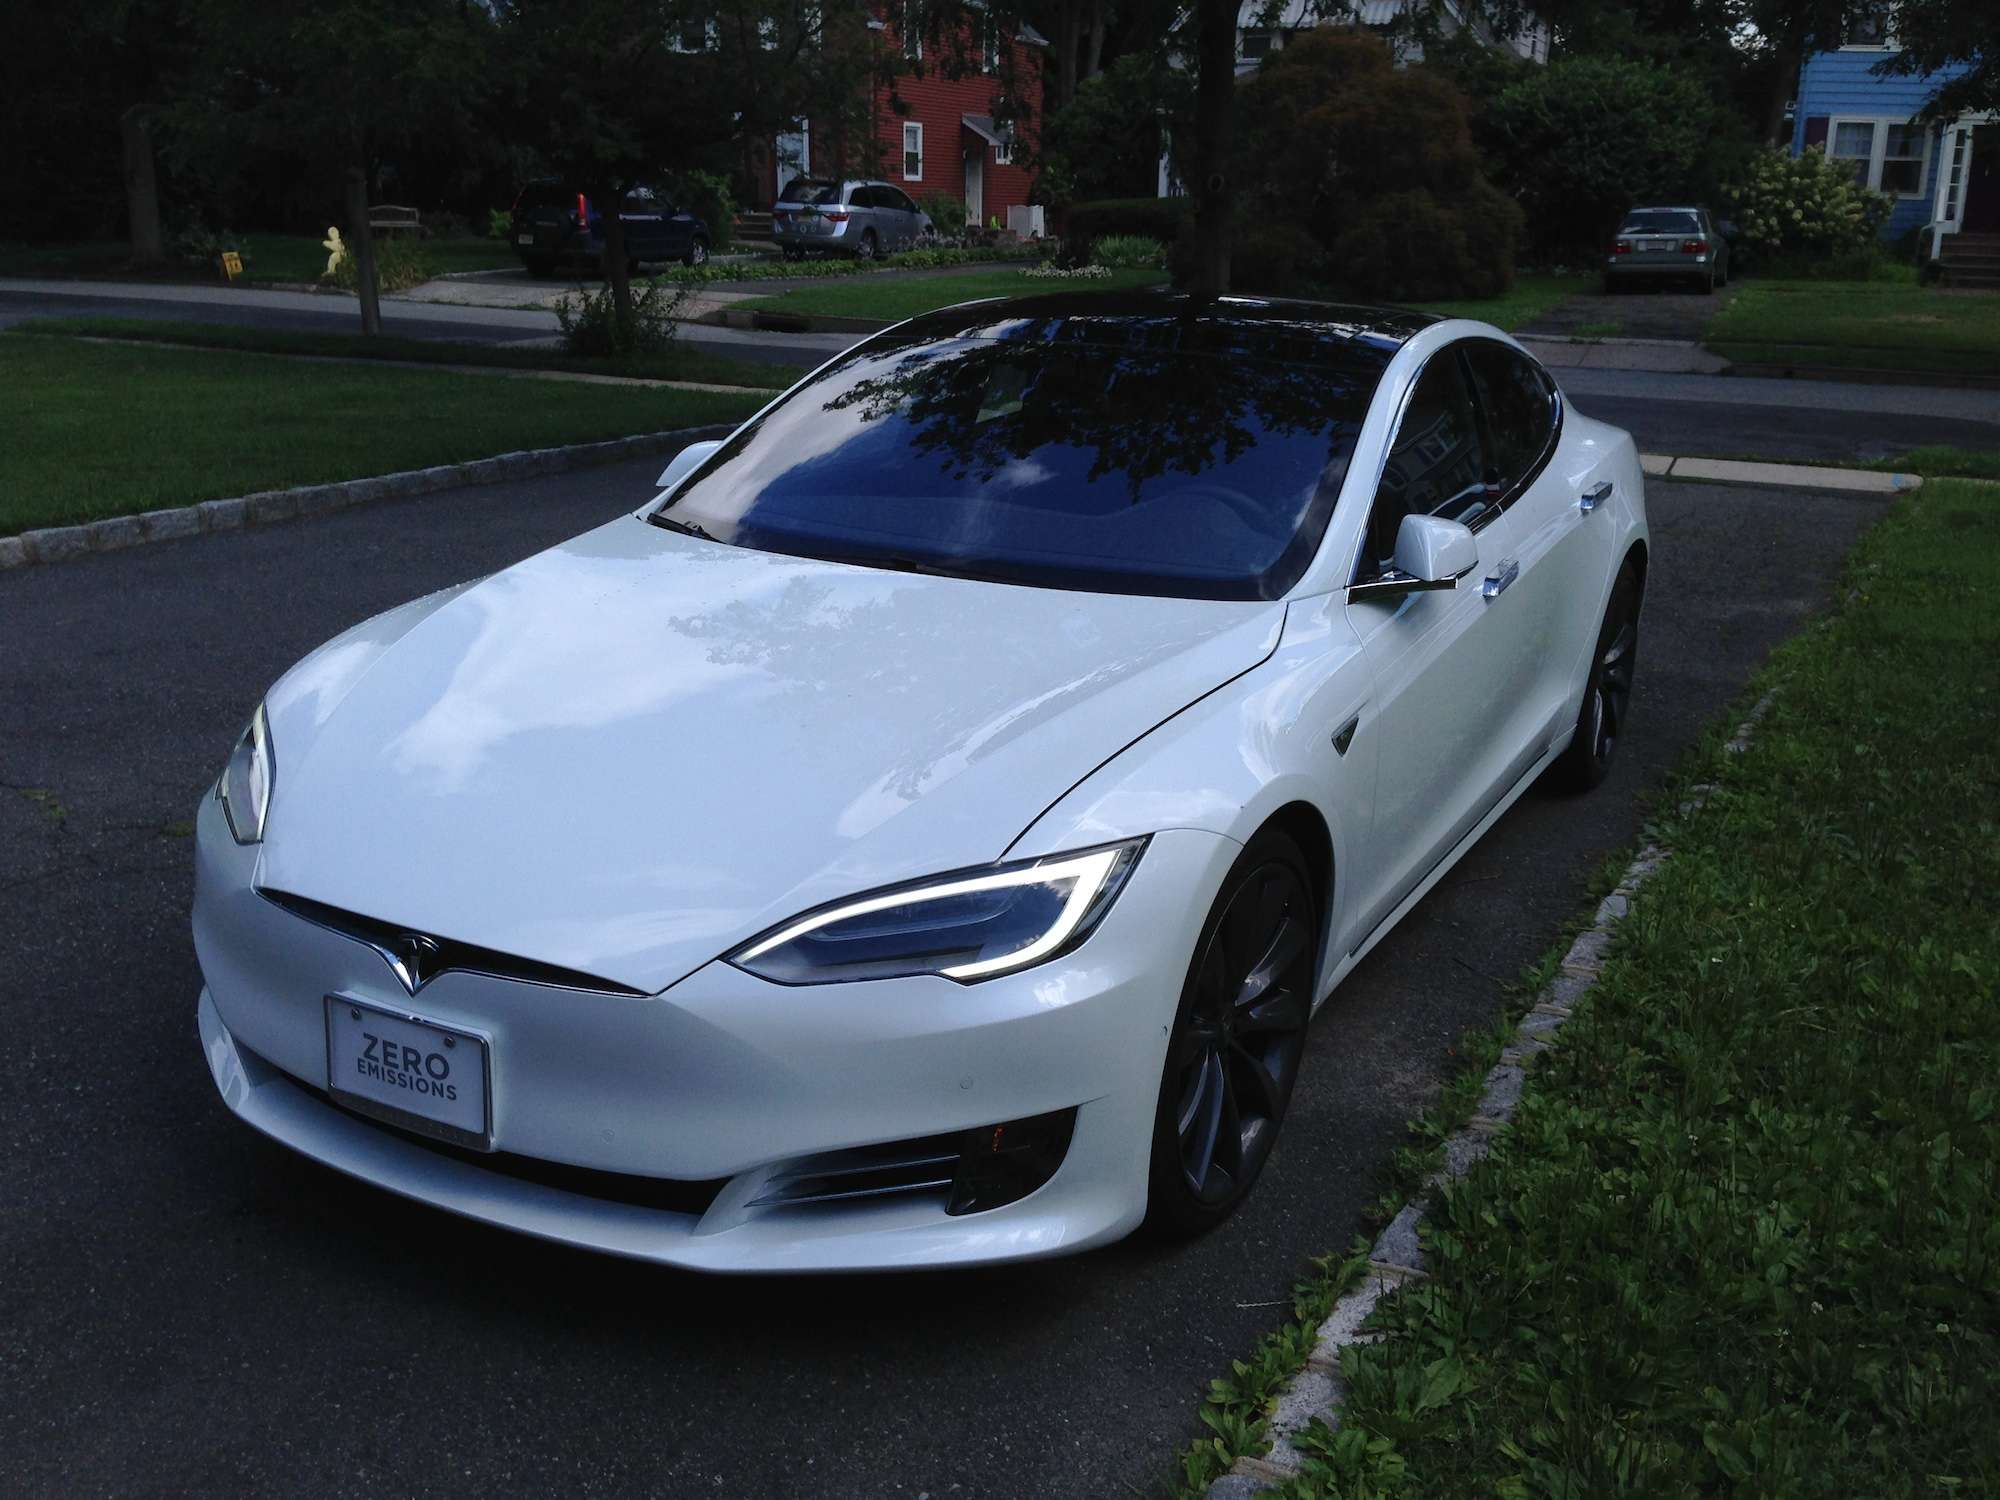 The Pearl White Tesla Equipped With Everything Landed In The Driveway Of Our Suburban New